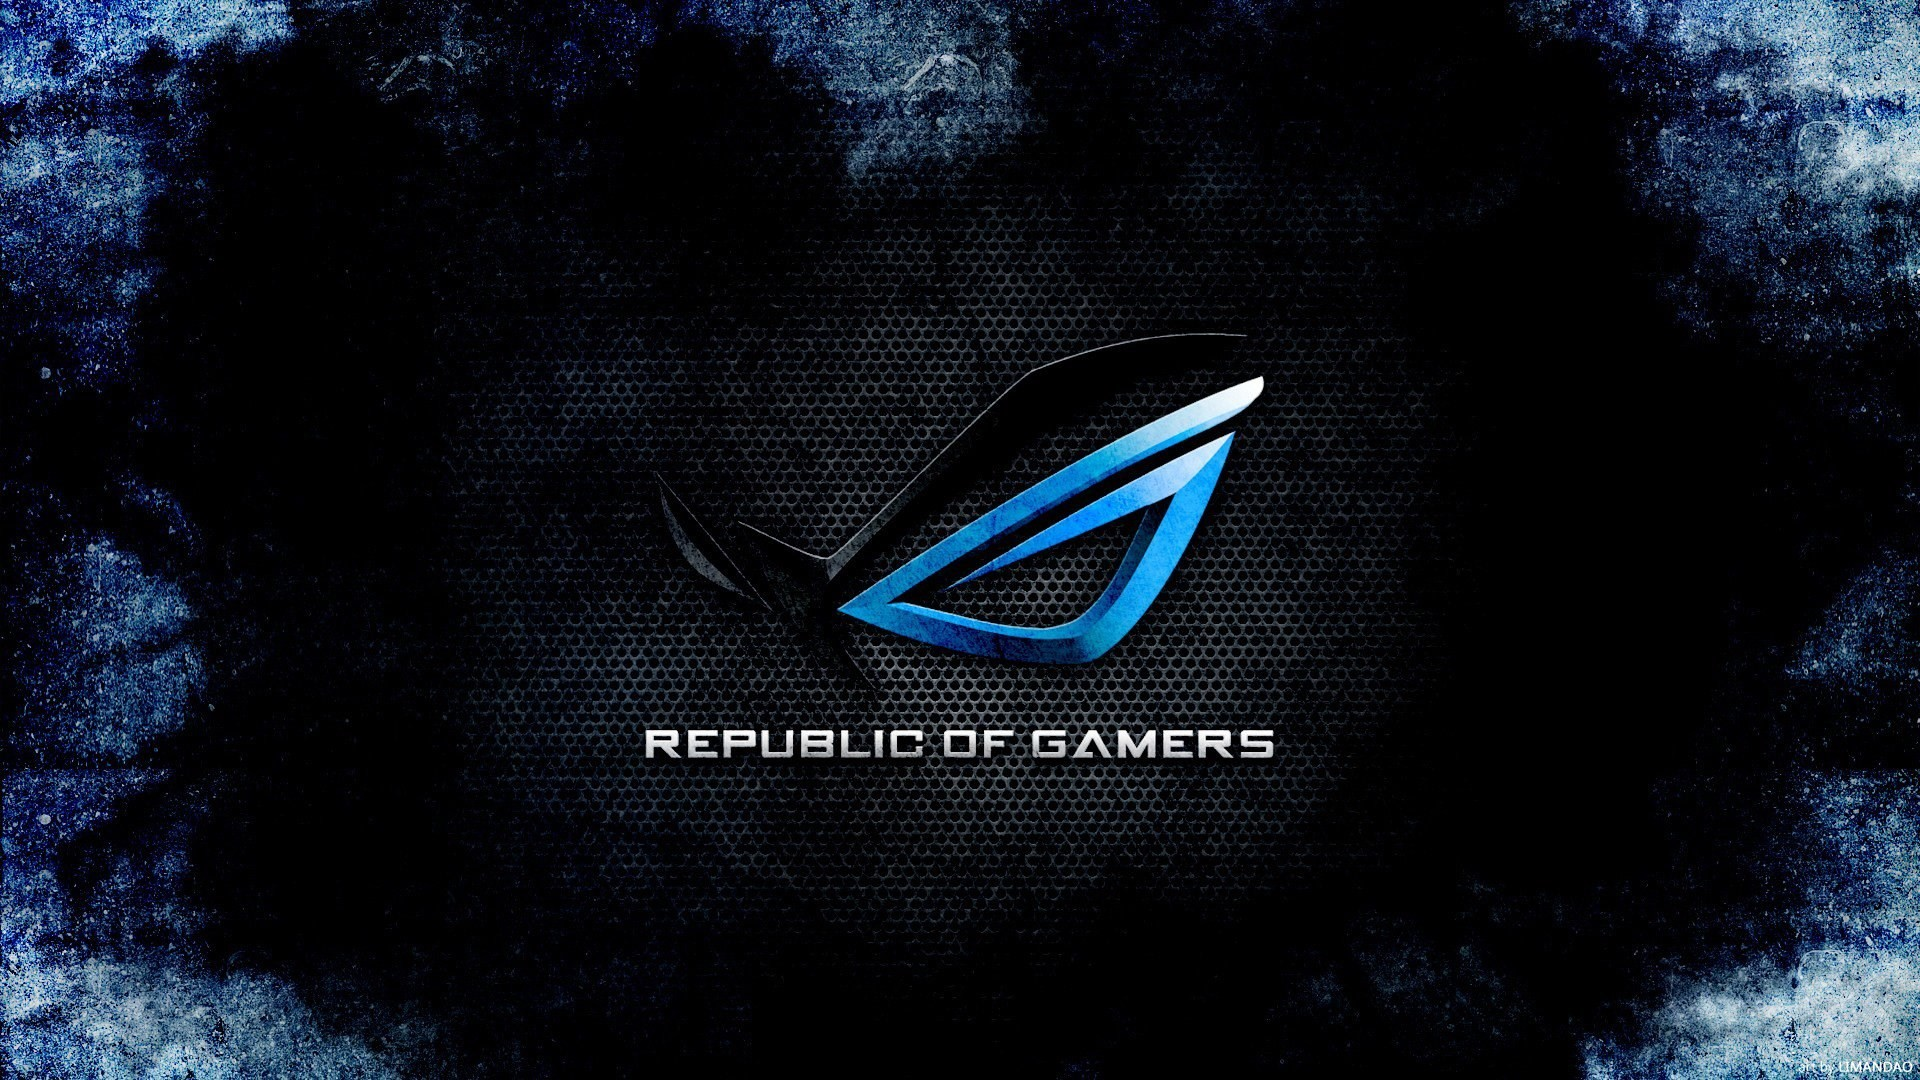 high resolution wallpapers widescreen asus by Adney Edwards (2017-03-26)